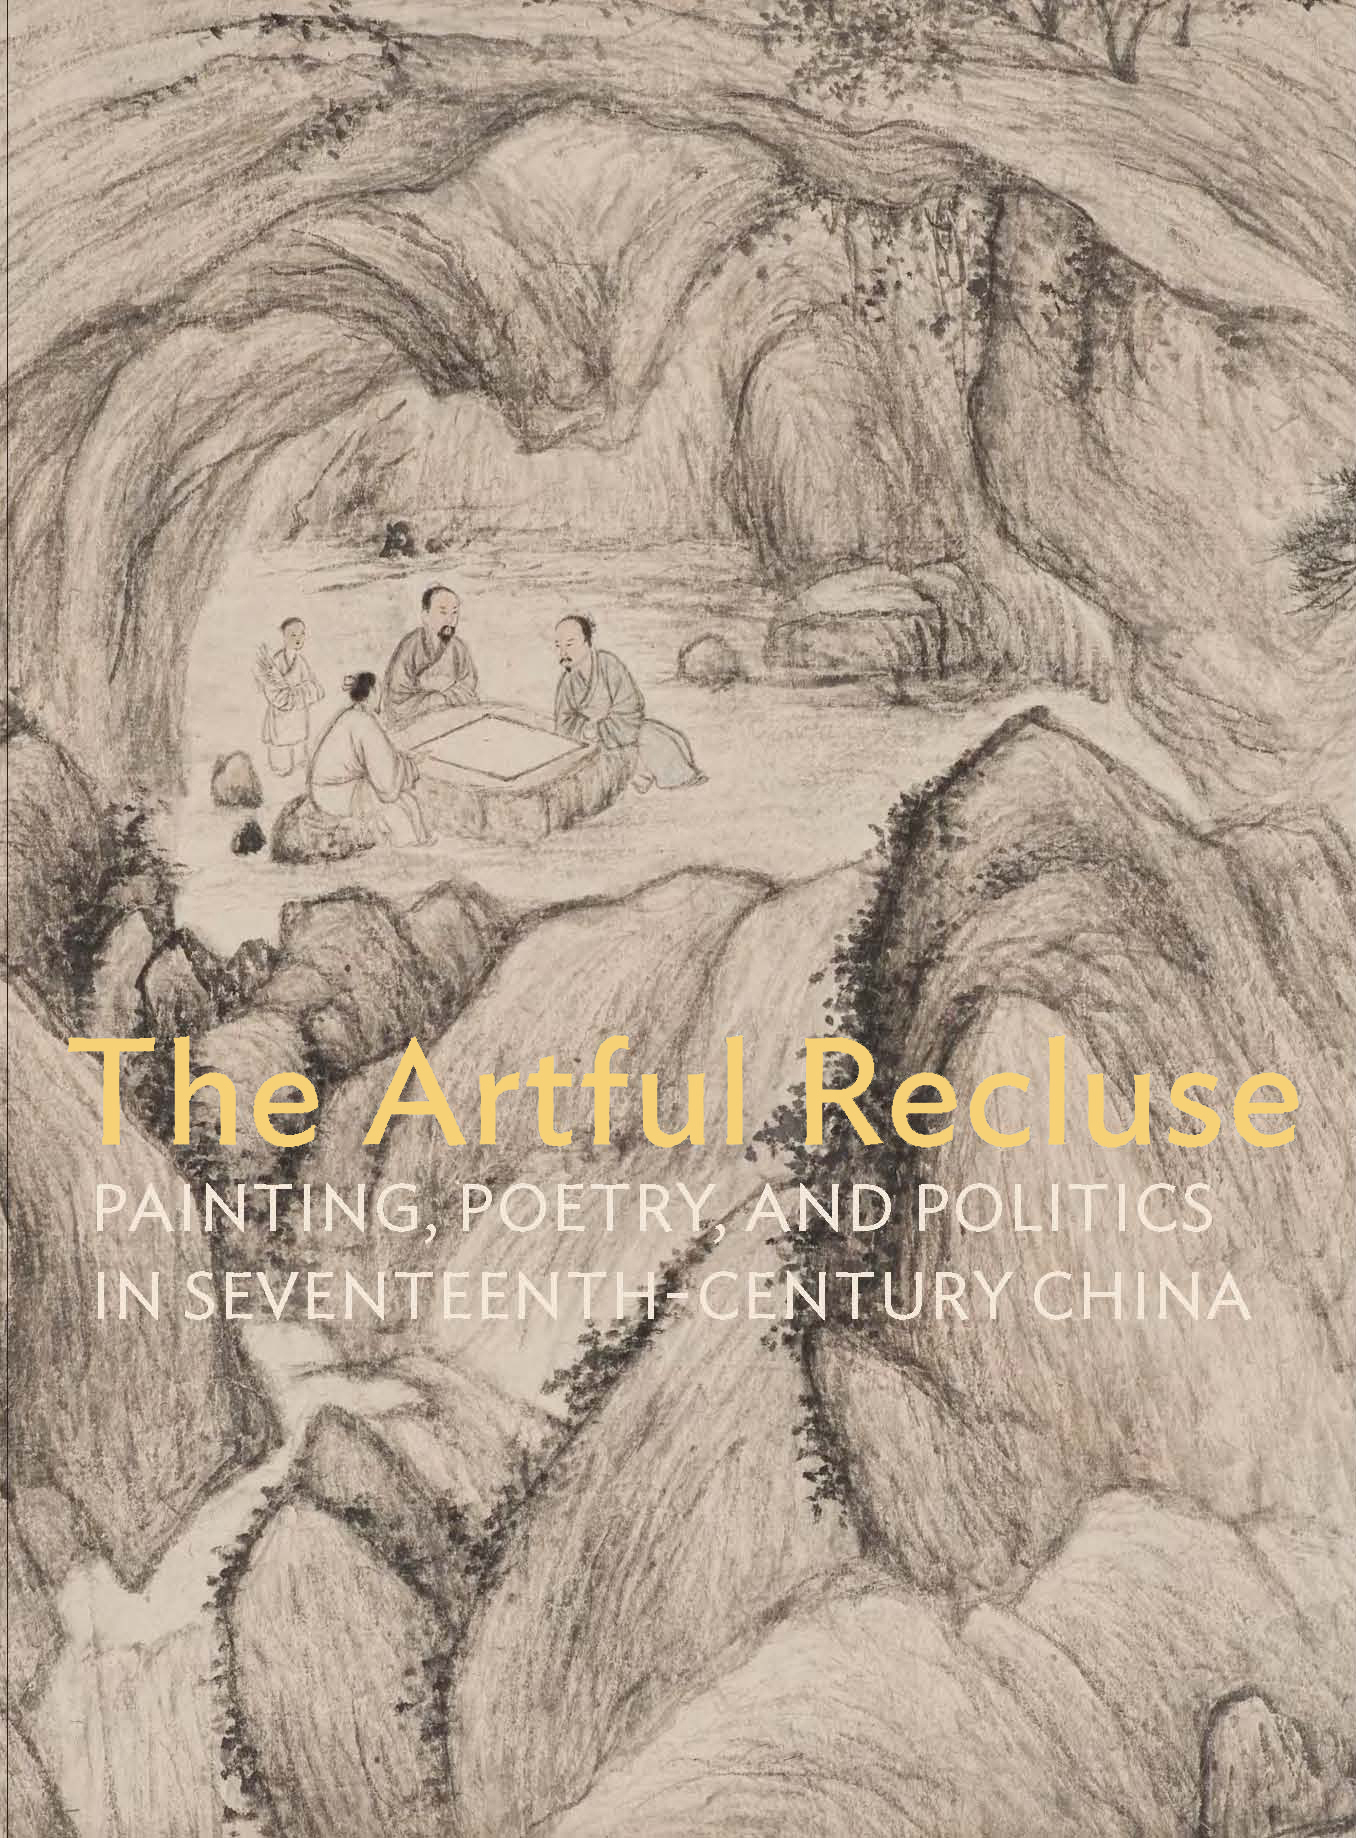 Peter C. Sturman and Susan Tai, eds. The Artful Recluse: Painting, Poetry, and Politics in Seventeenth-Century China. New York/London: Prestel, 2012.